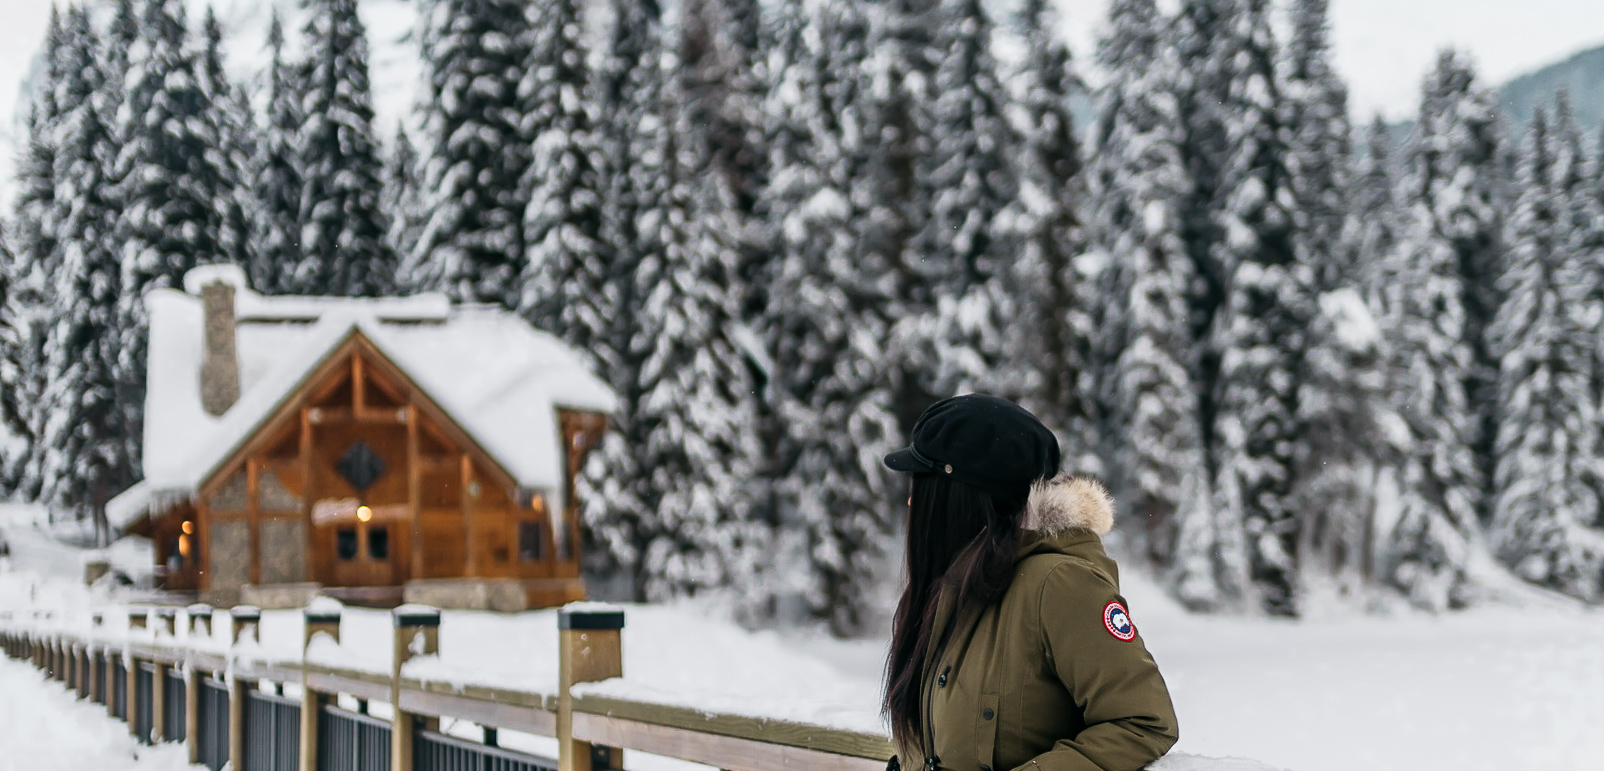 Emerald Lake   Why You Should Make The Best of Winter   The Jeneralist